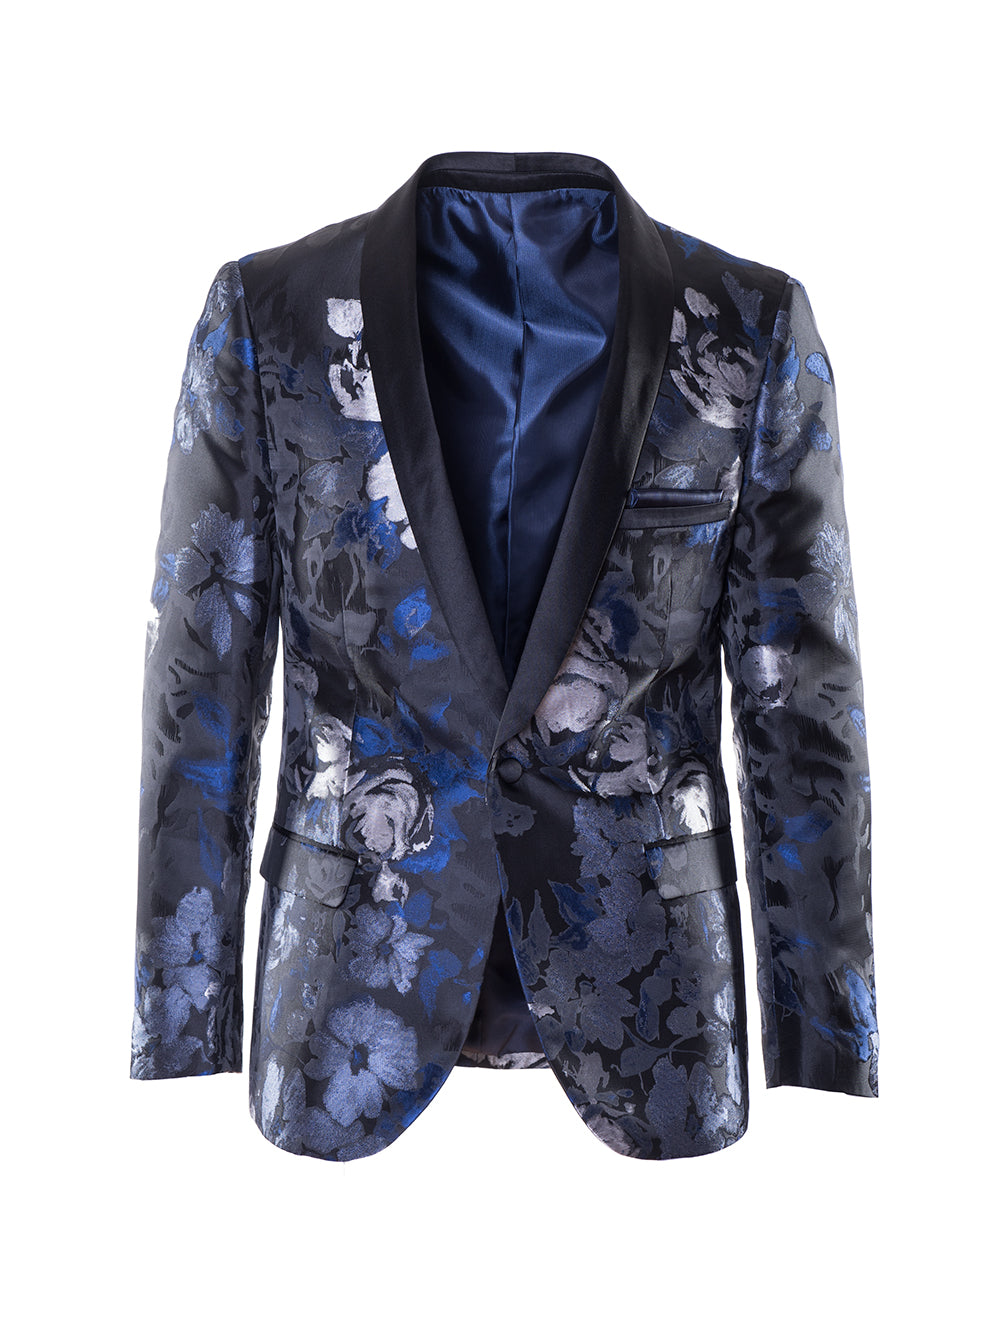 Regent Shawl Dinner Jacket - Black Blue Silver Floral Jacquard